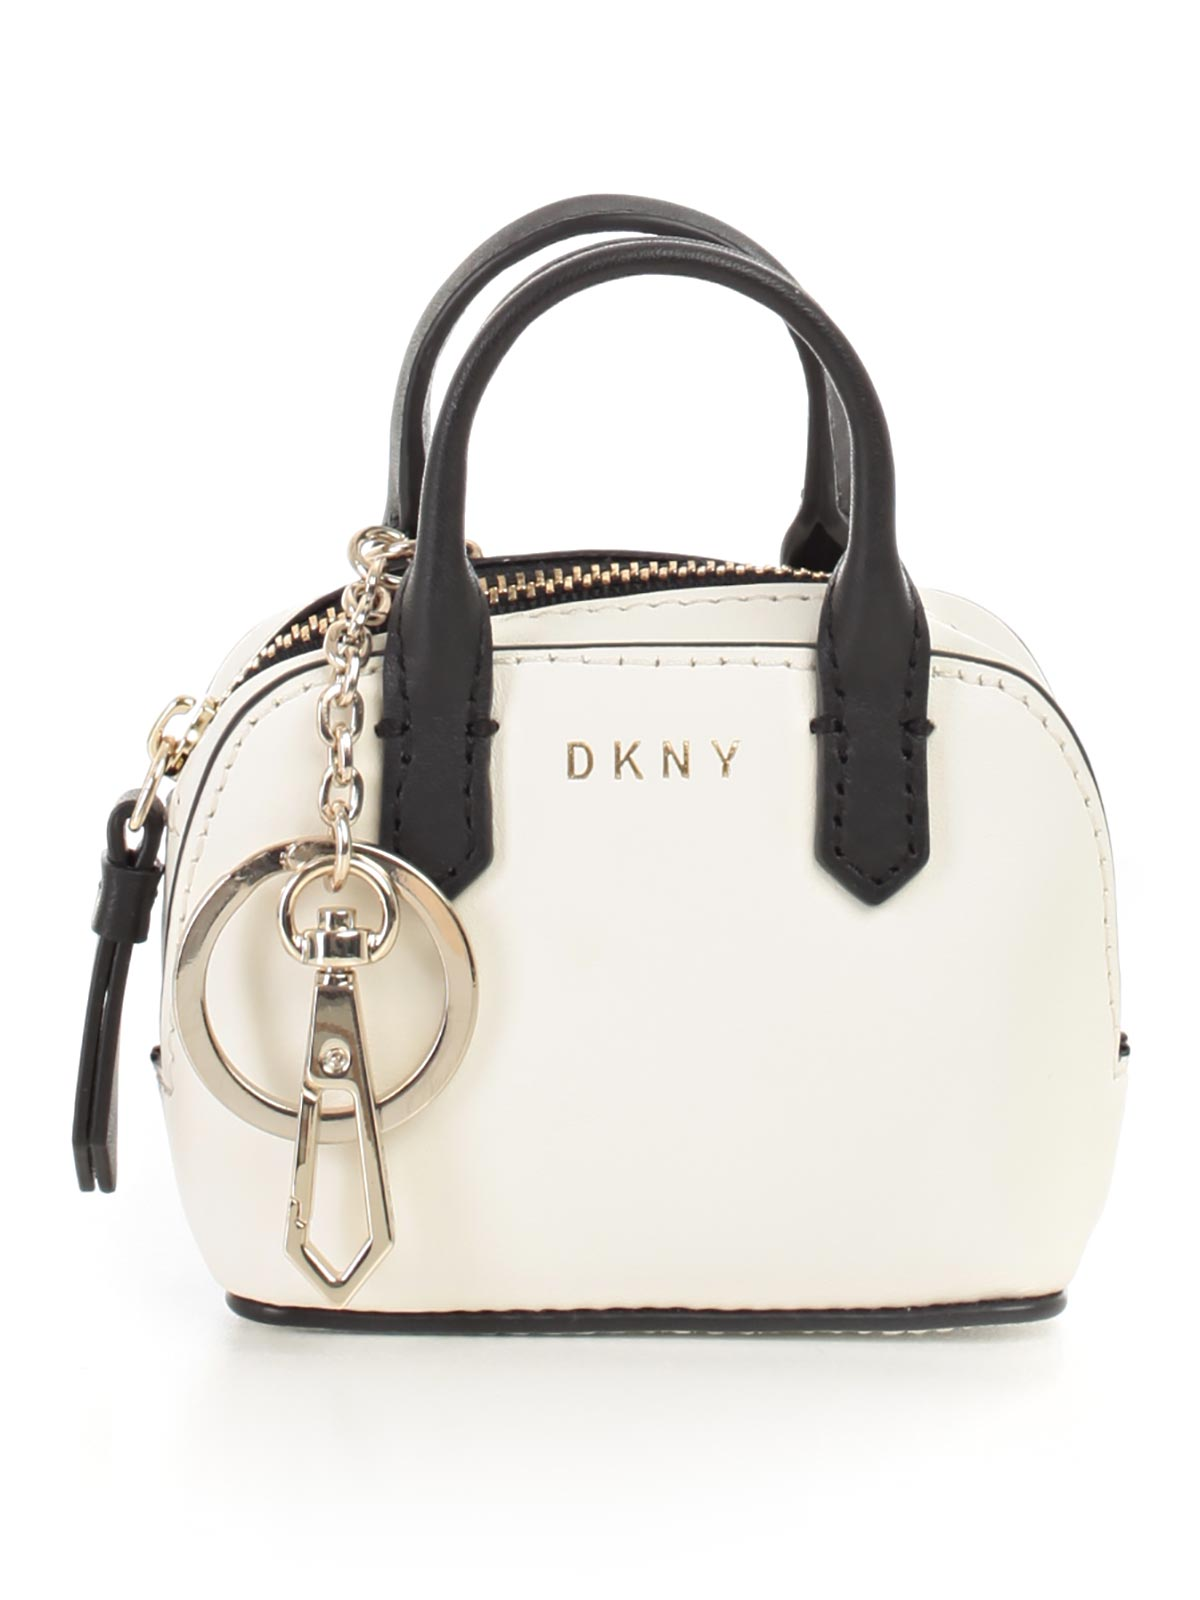 Picture of DKNY SMALL LEATHER GOODS MINI SATCHEL CHARM